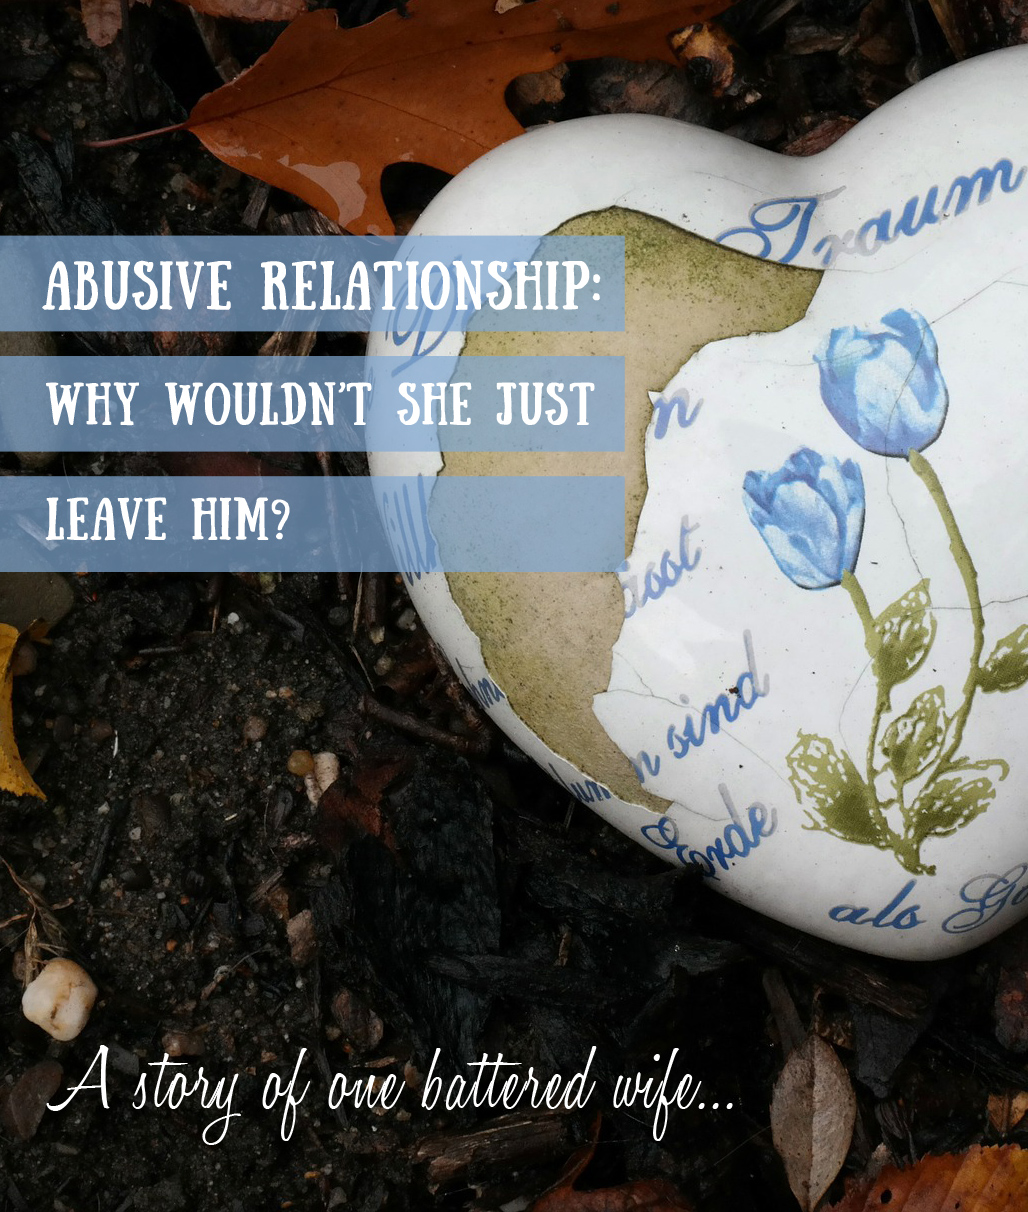 abusive-relationship-why-doesnt-she-just-leave-him-battered-wife-pinterest